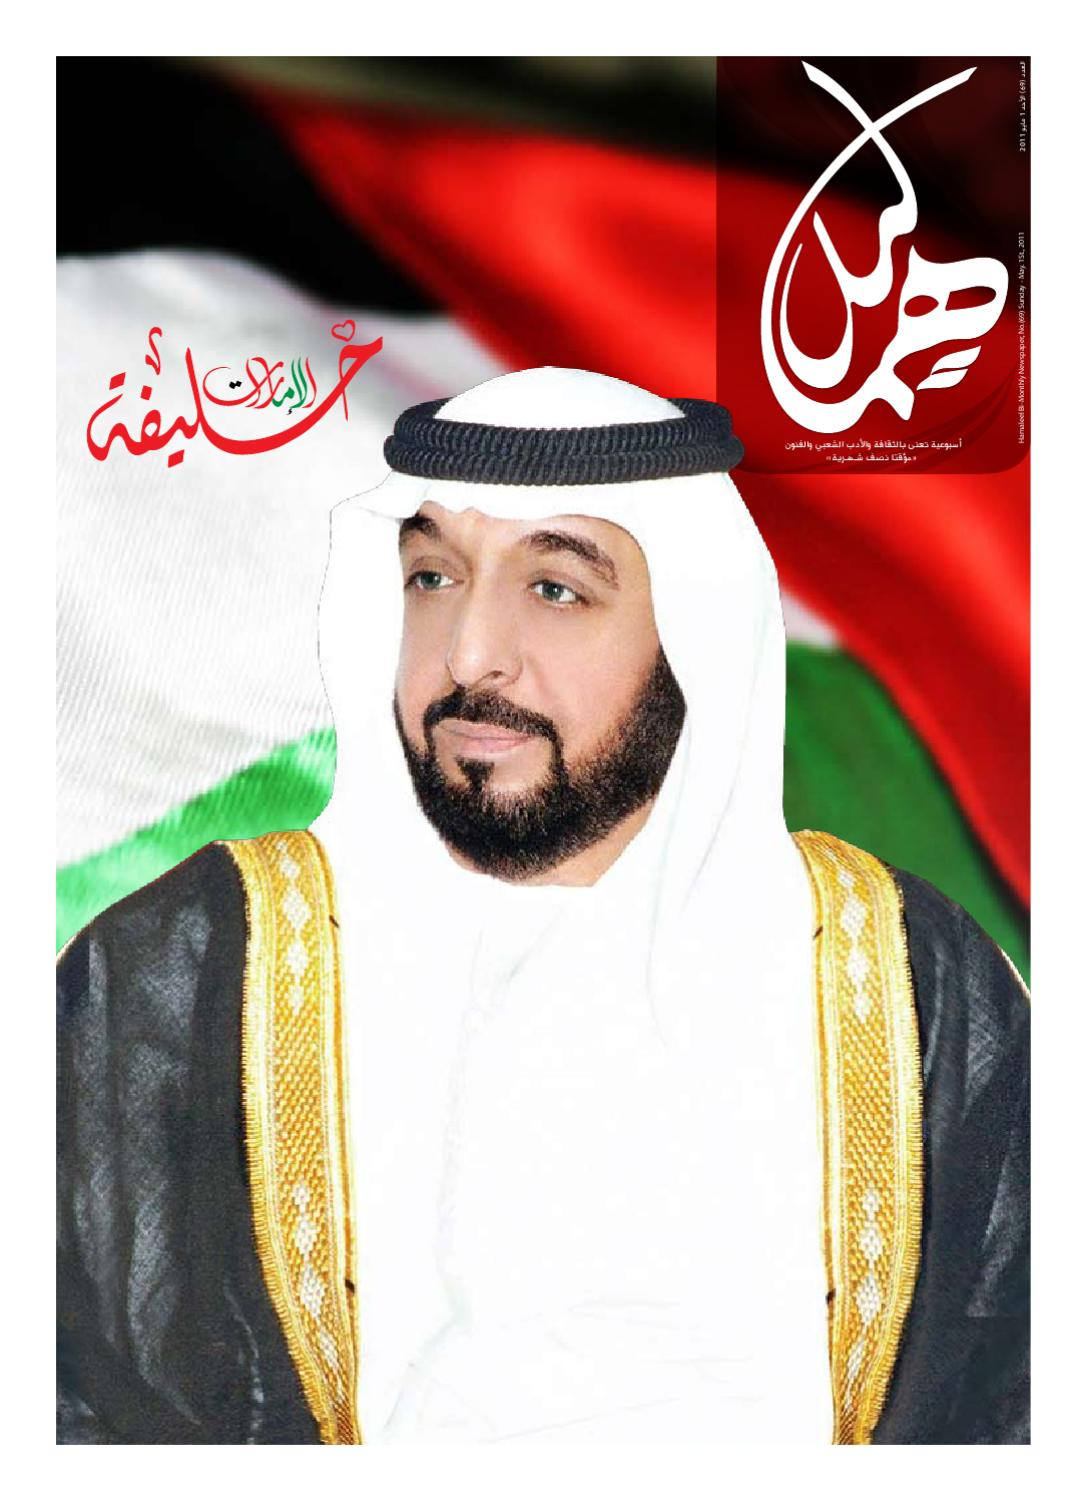 c99e7005a4904 Issue No.69 by Hamaleel newspaper - issuu